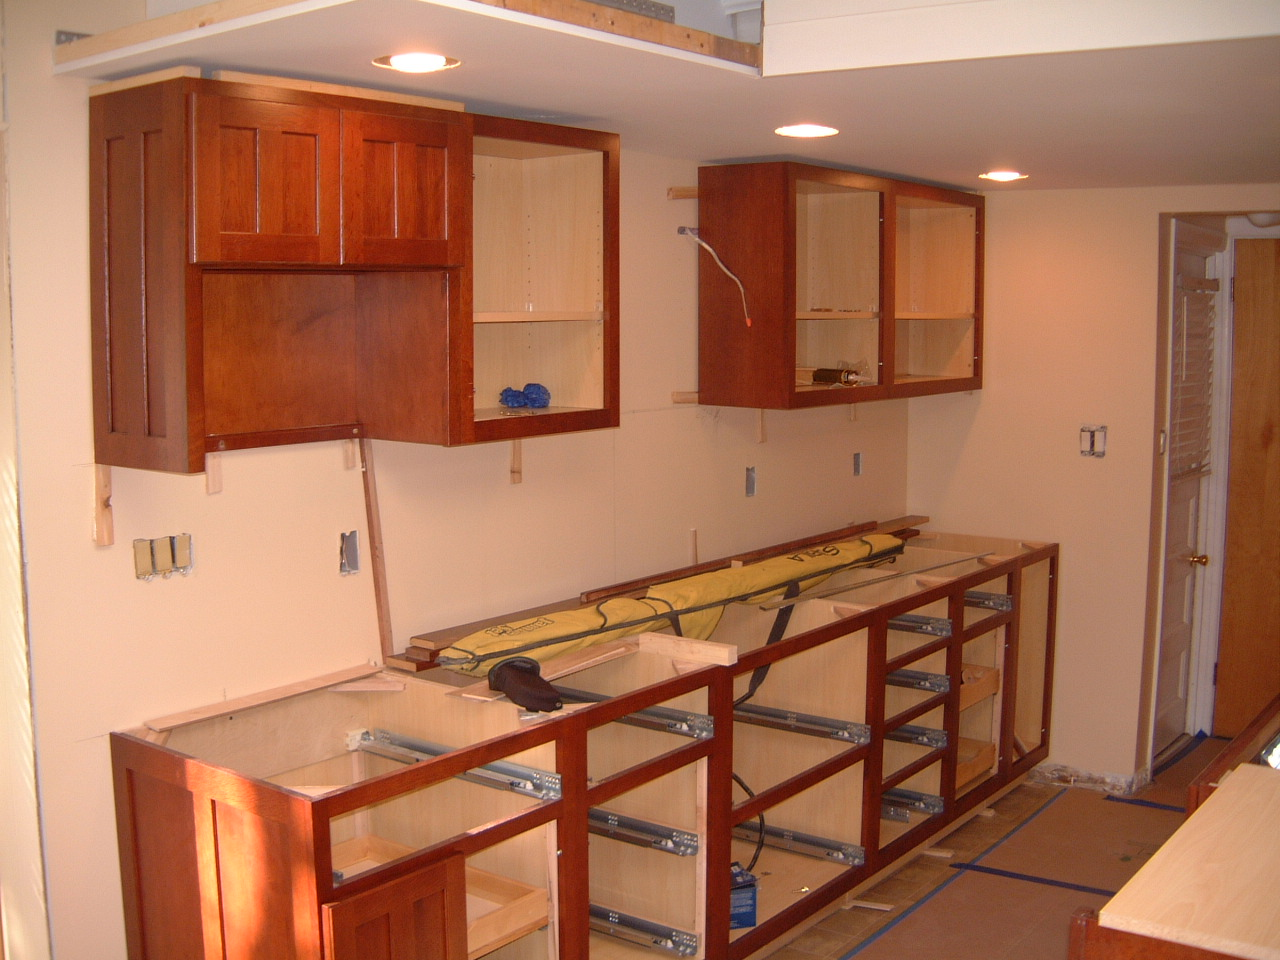 Springfield kitchen cabinet install remodeling designs for Remodeling kitchen cabinets ideas